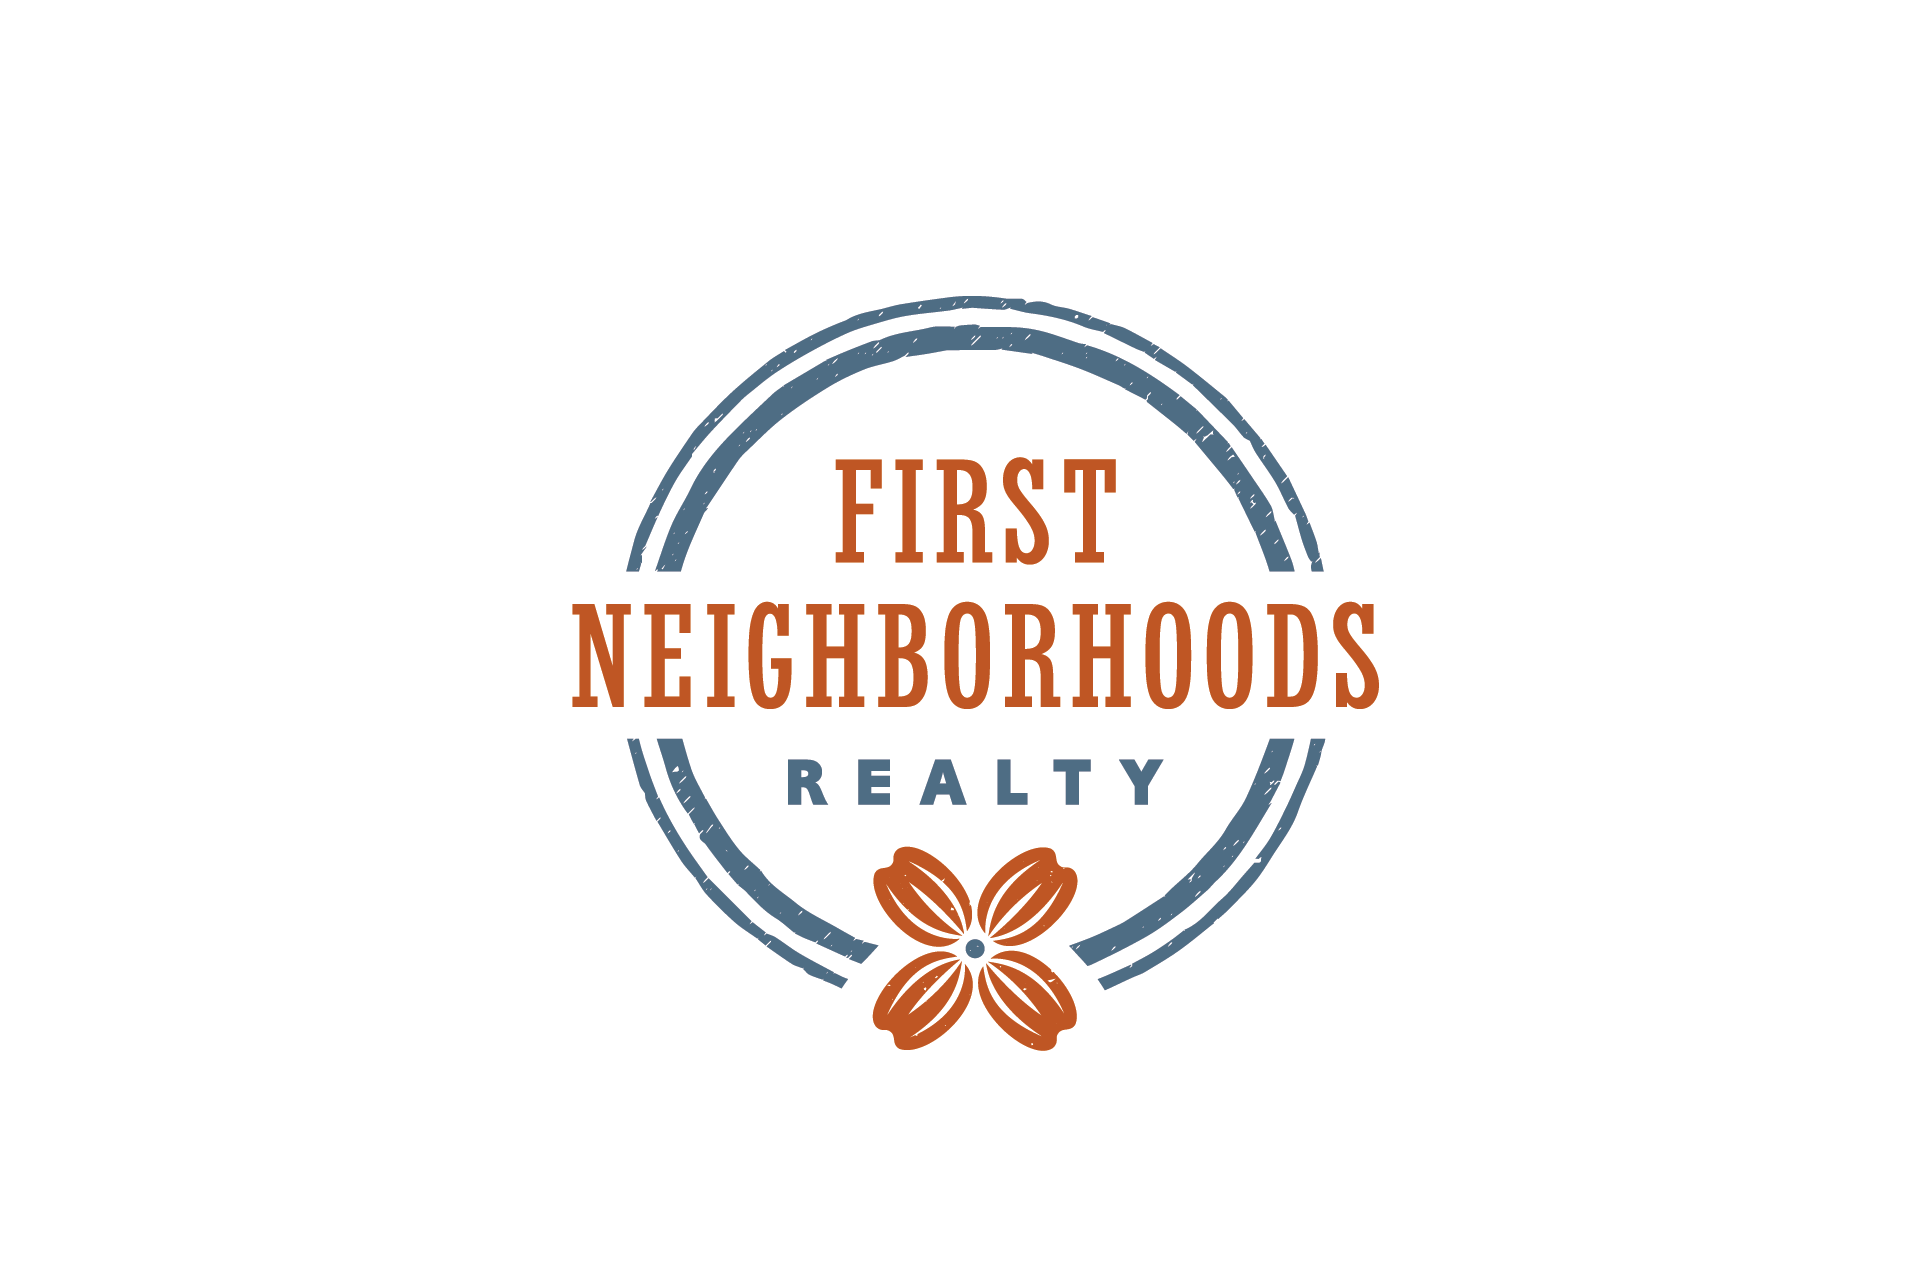 First Neighborhoods Realty logo